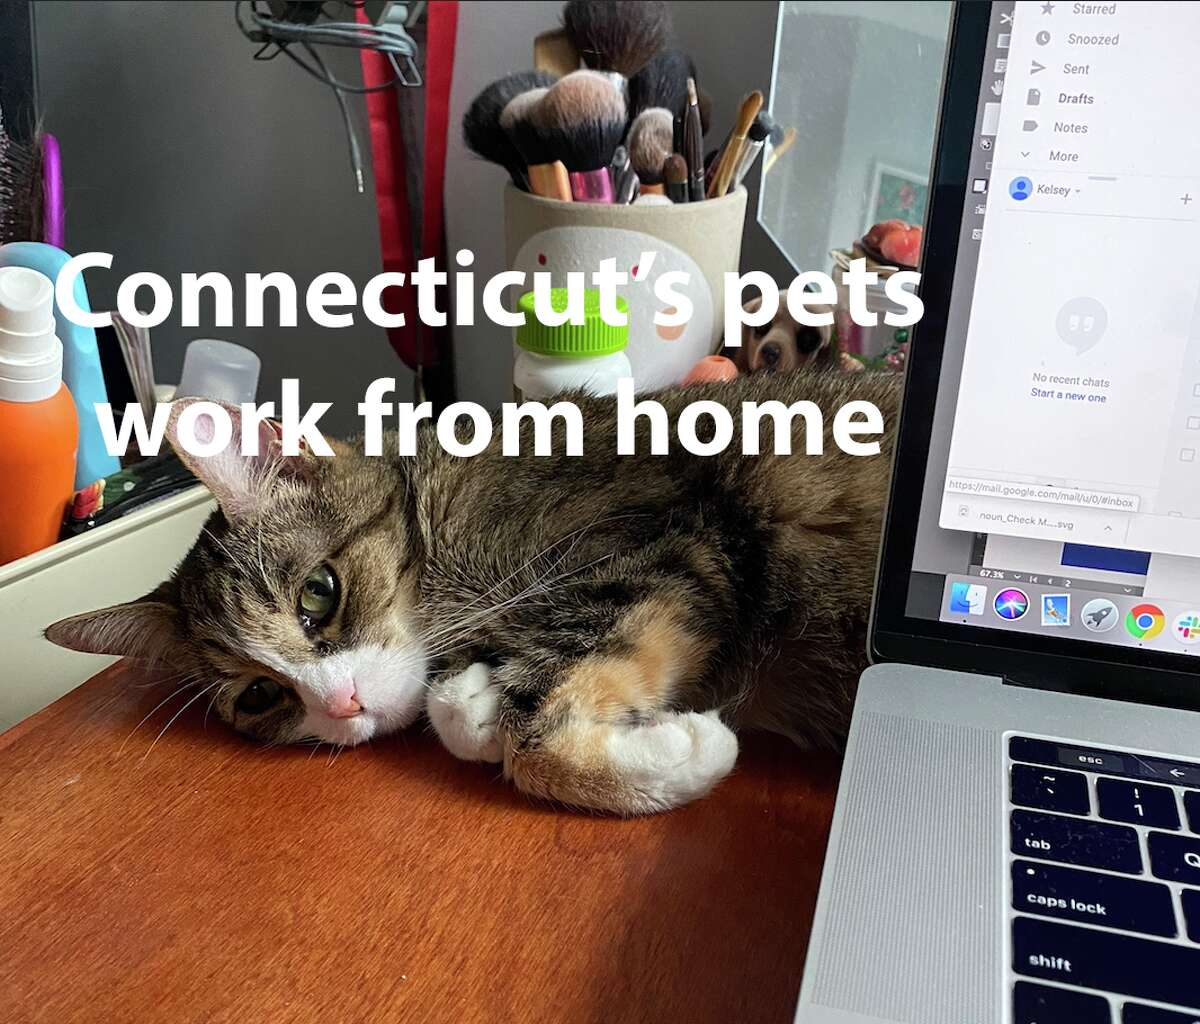 Connecticut's pets work from home